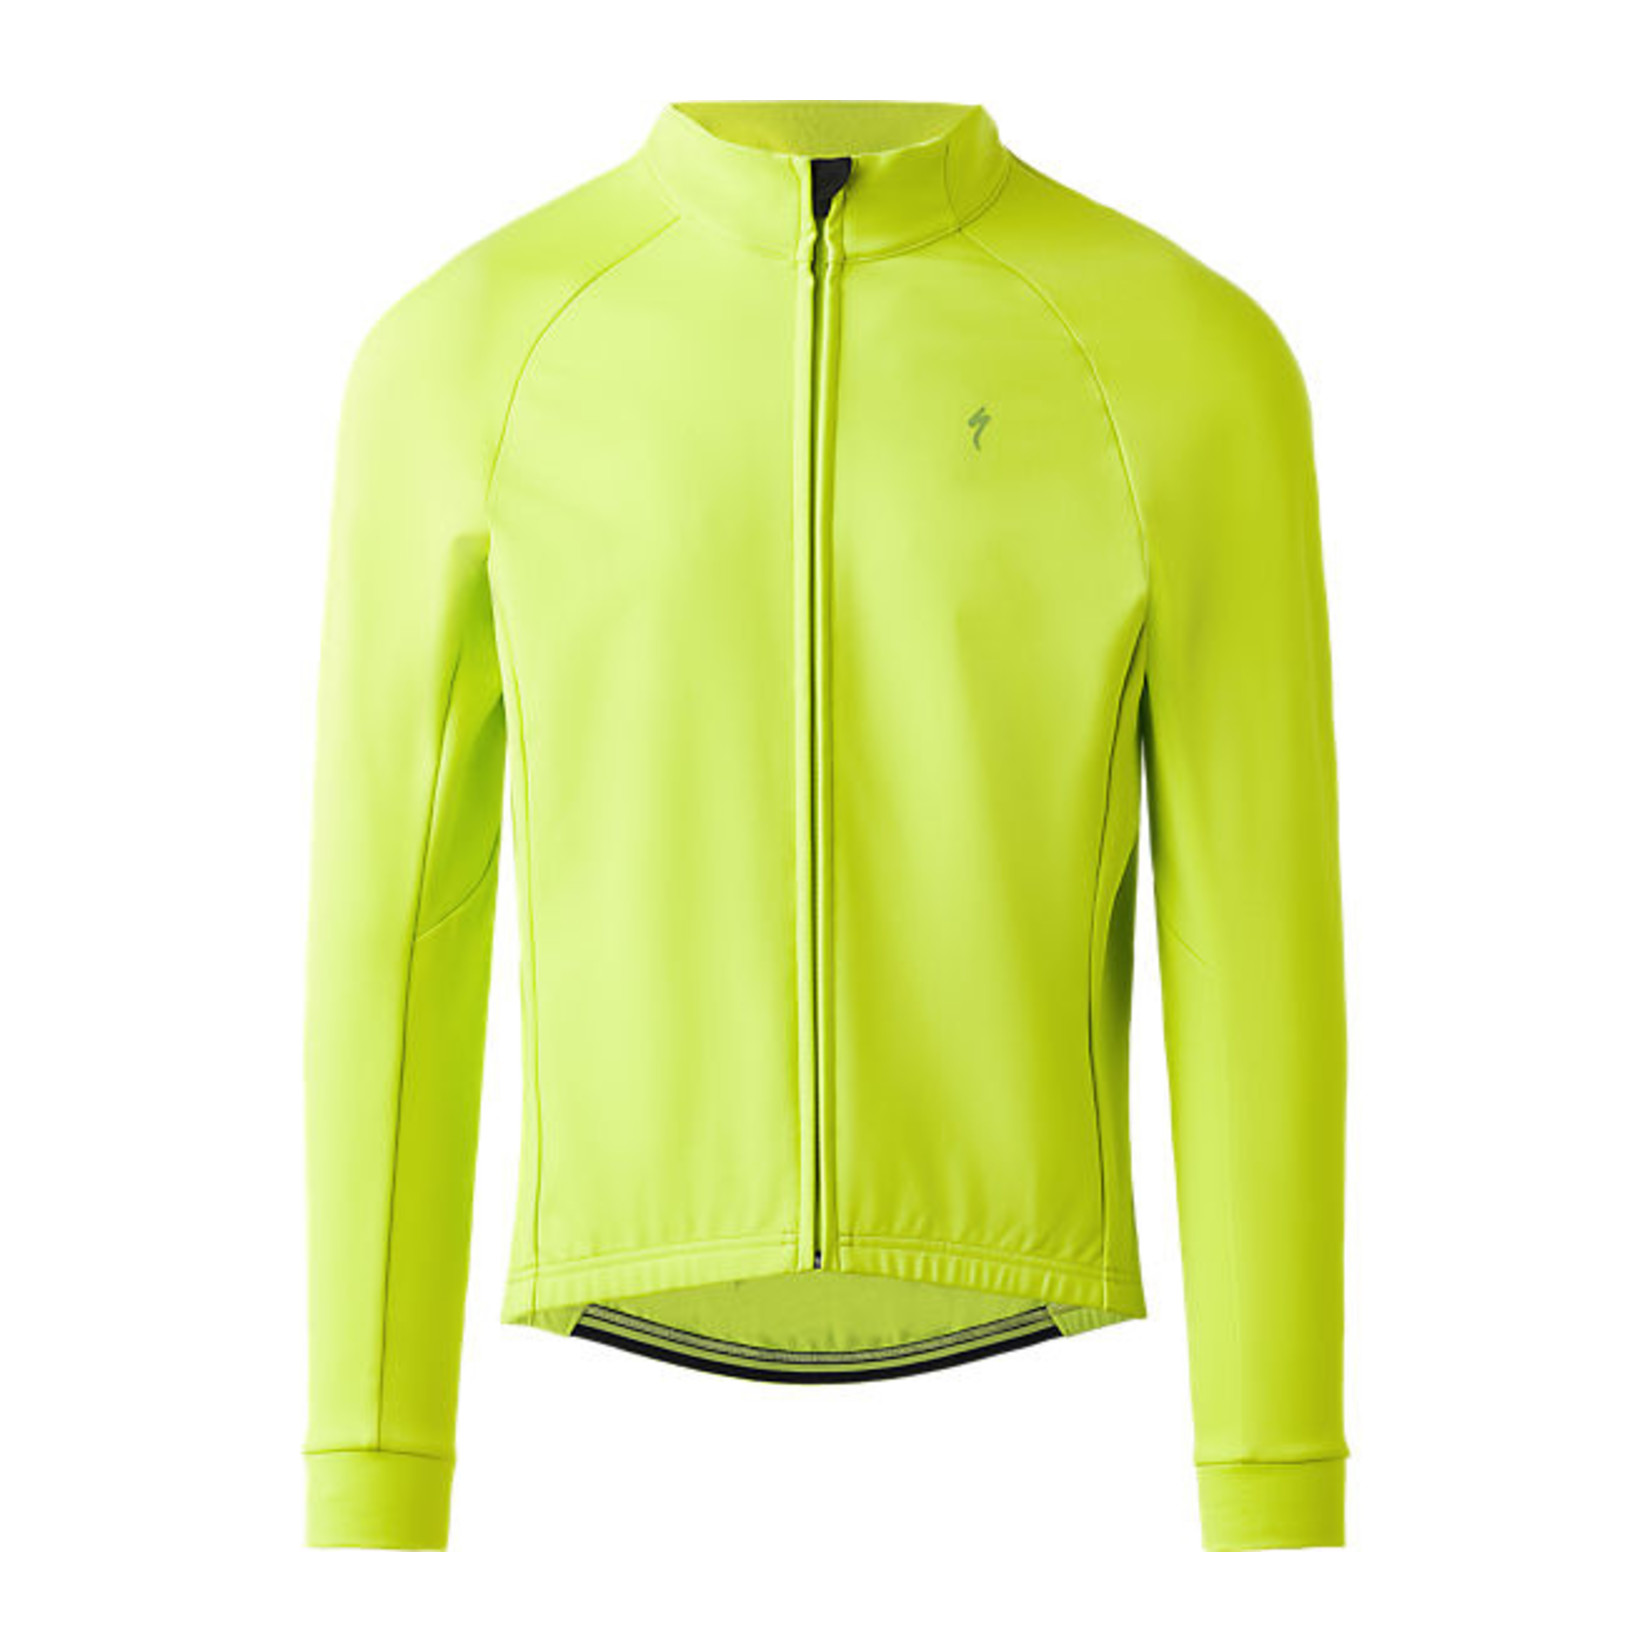 Specialized Specialized Therminal Long Sleeve Wind Jersey Men's